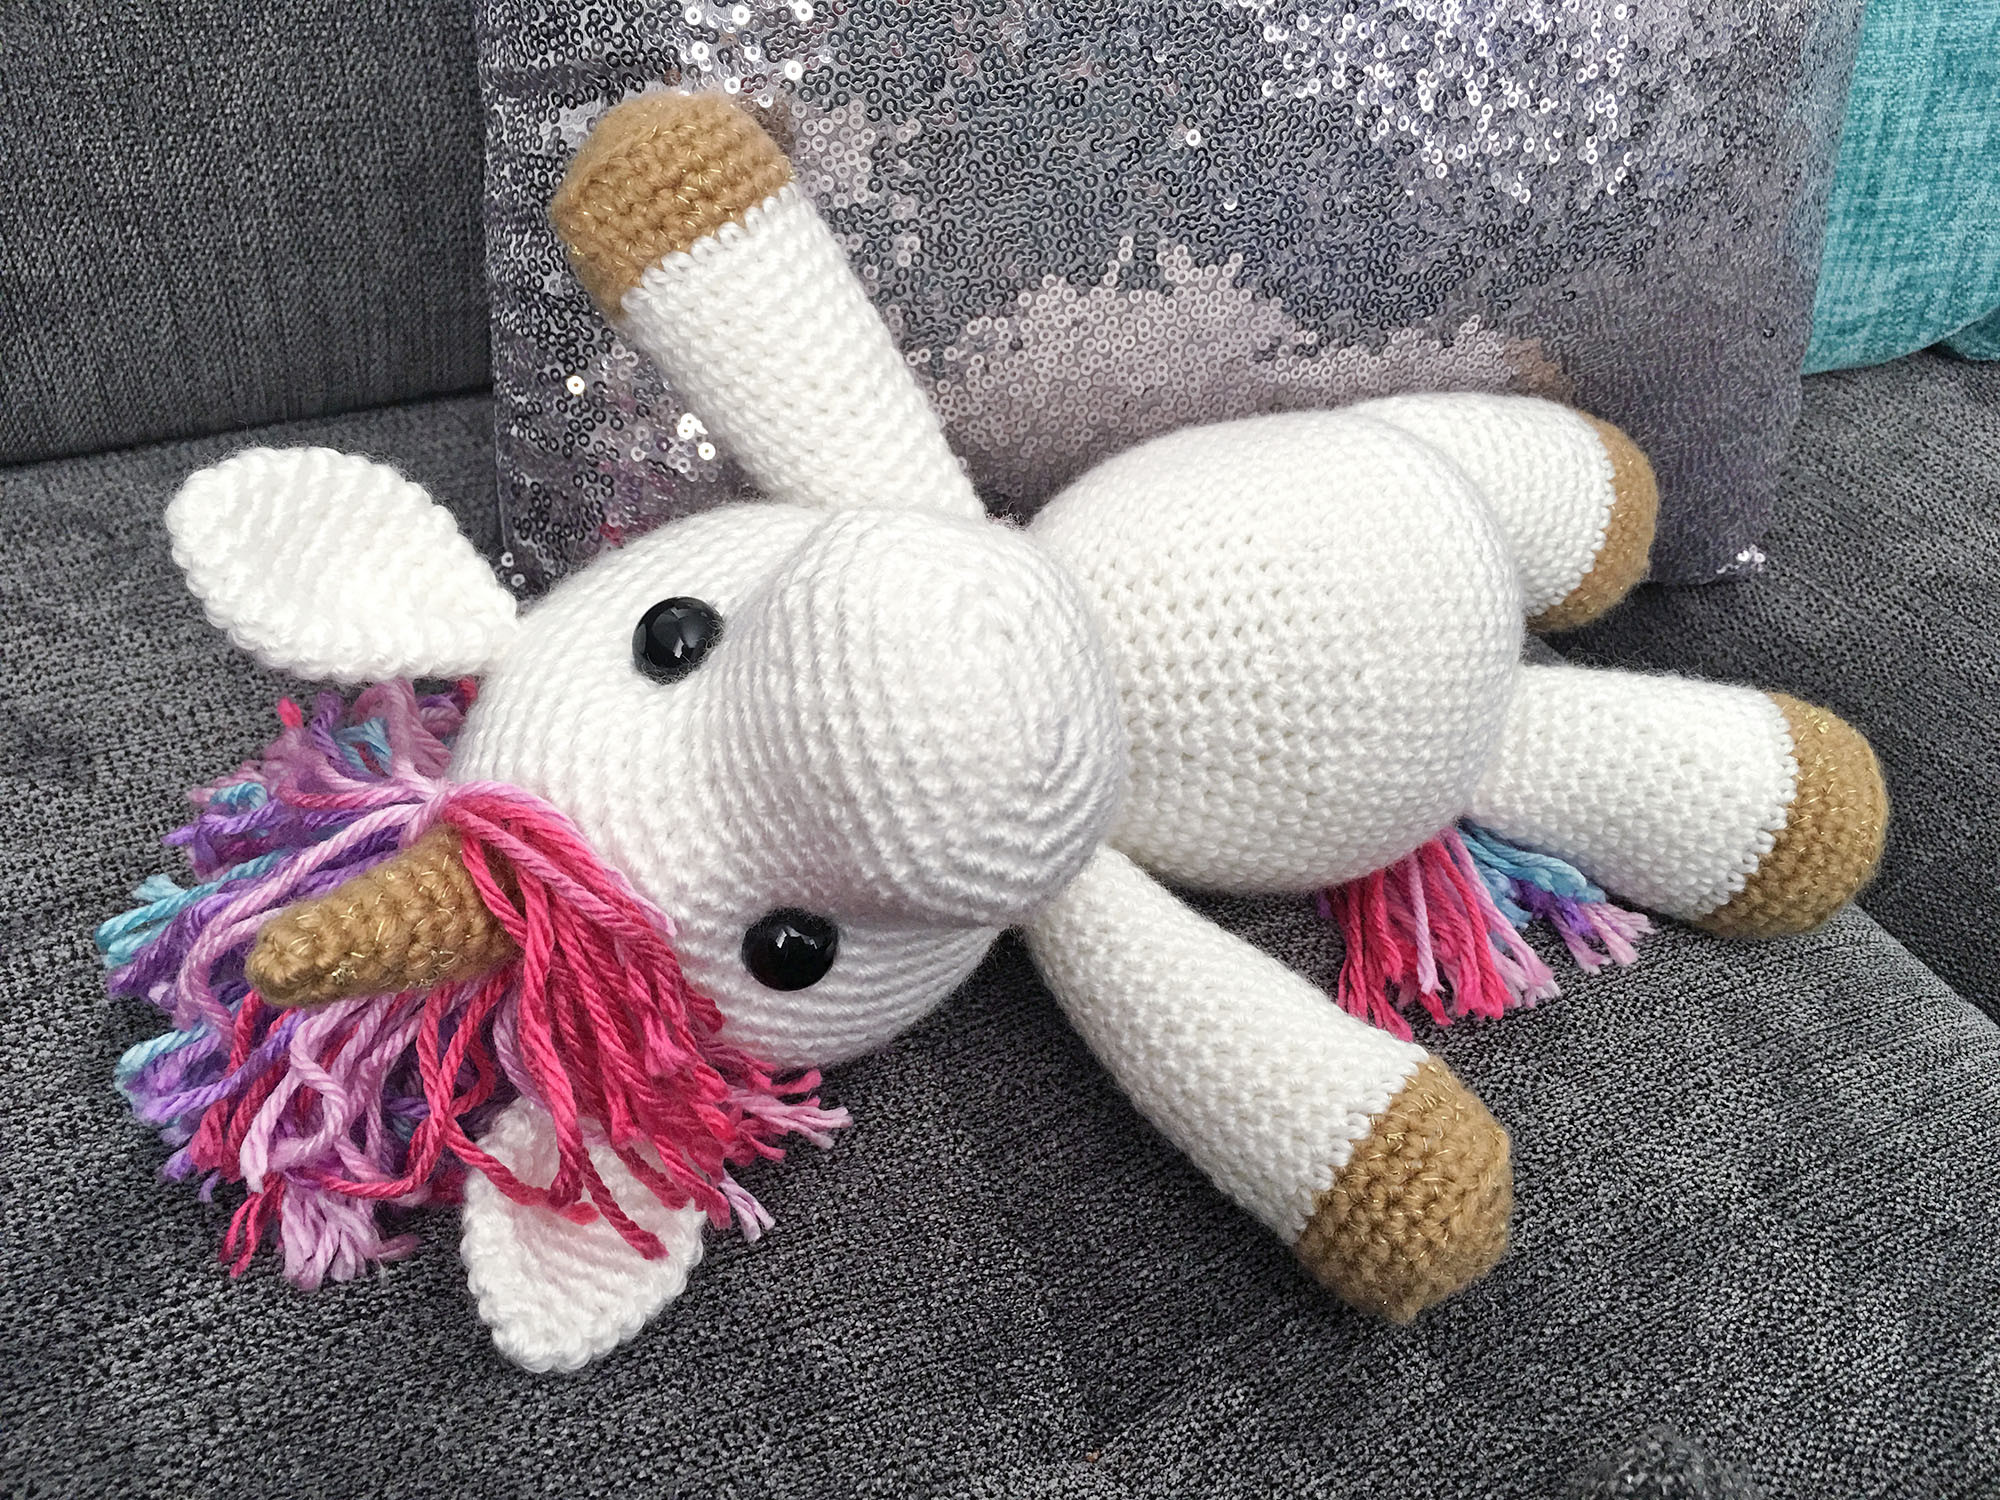 Free Unicorn Crochet Pattern Best Of Jazzy the Unicorn Free Amigurumi Pattern Of Free Unicorn Crochet Pattern Unique Dada Neon Crochet Tiny Rainbow Unicorn Amigurumi by